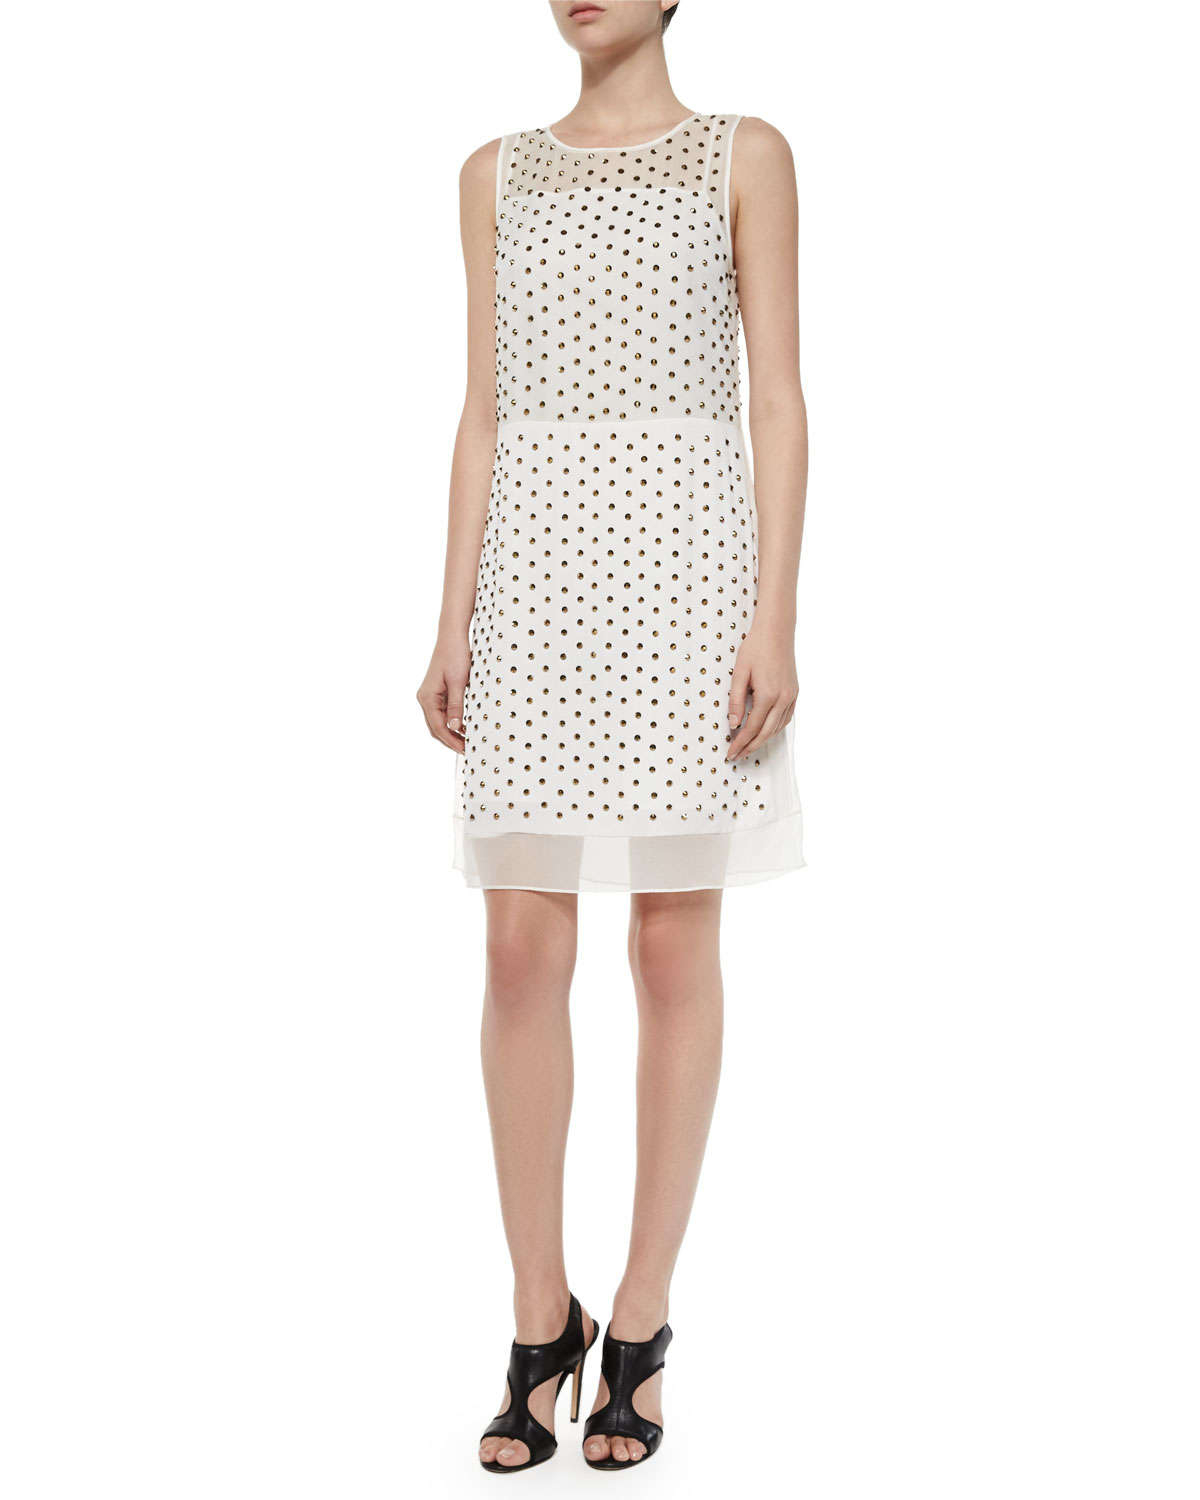 Lyst diane von furstenberg abriela embellished dress in for Diane von furstenberg clothes